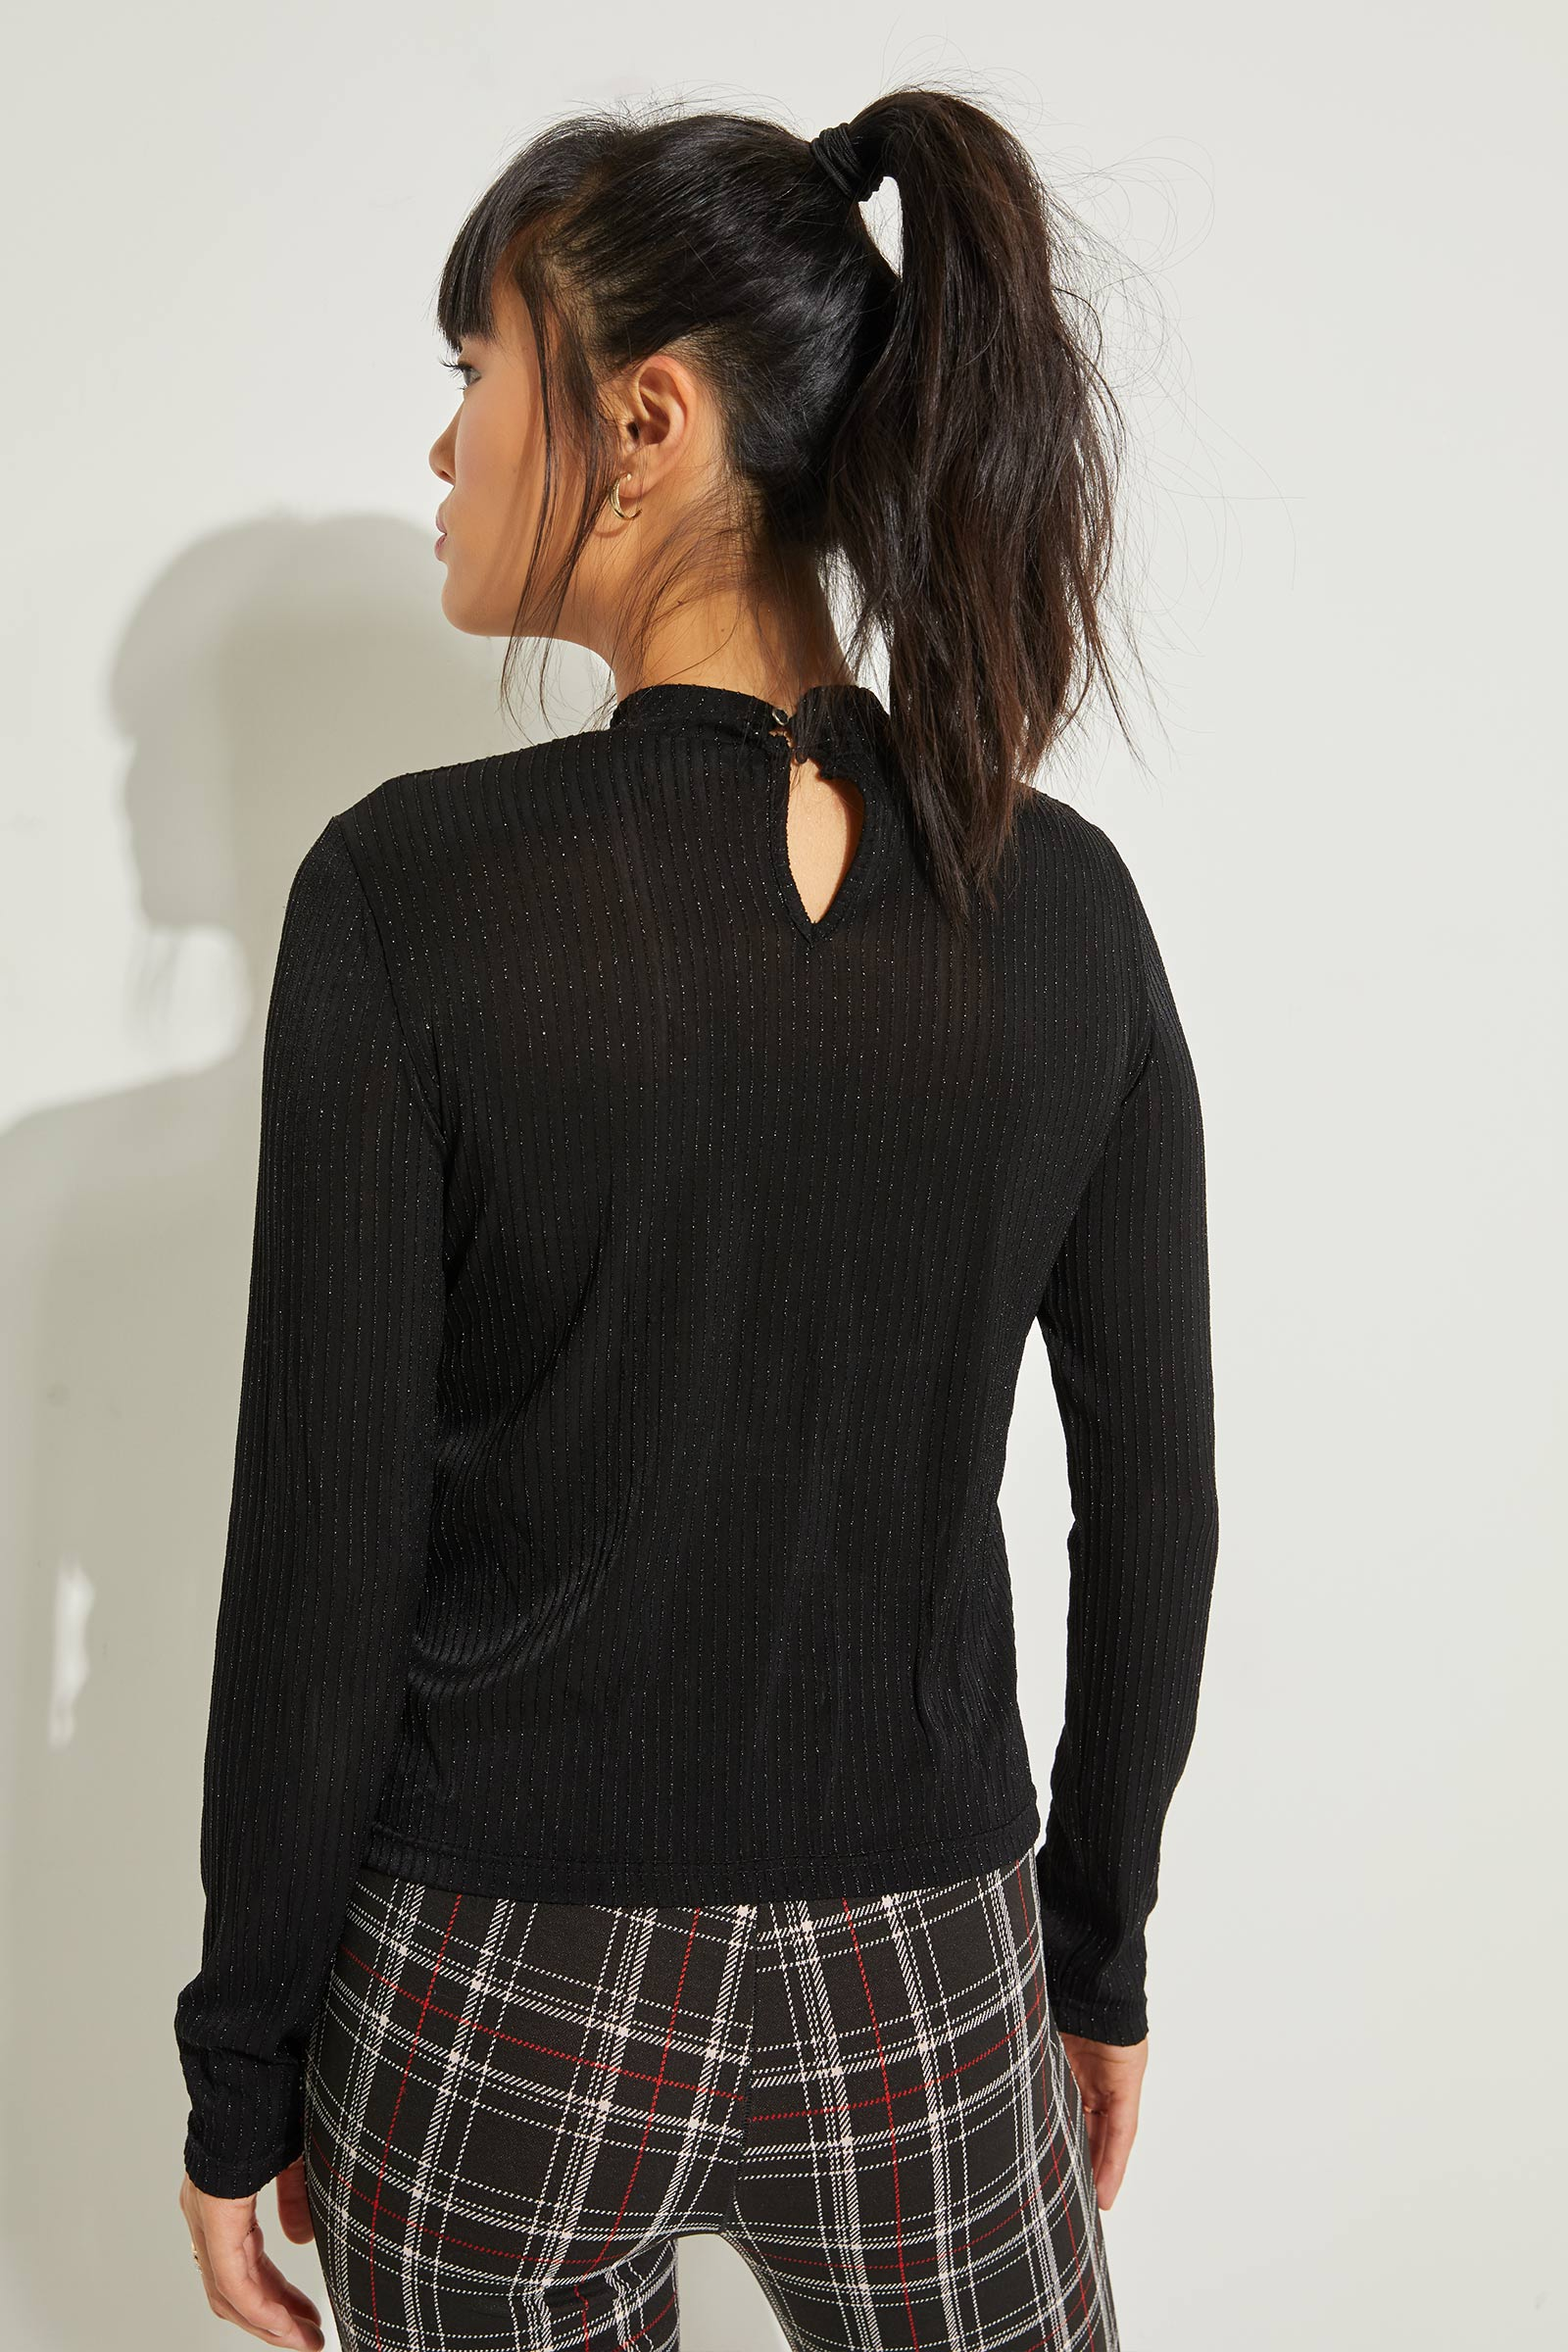 A.C.W. Sparkly Mock Neck Top